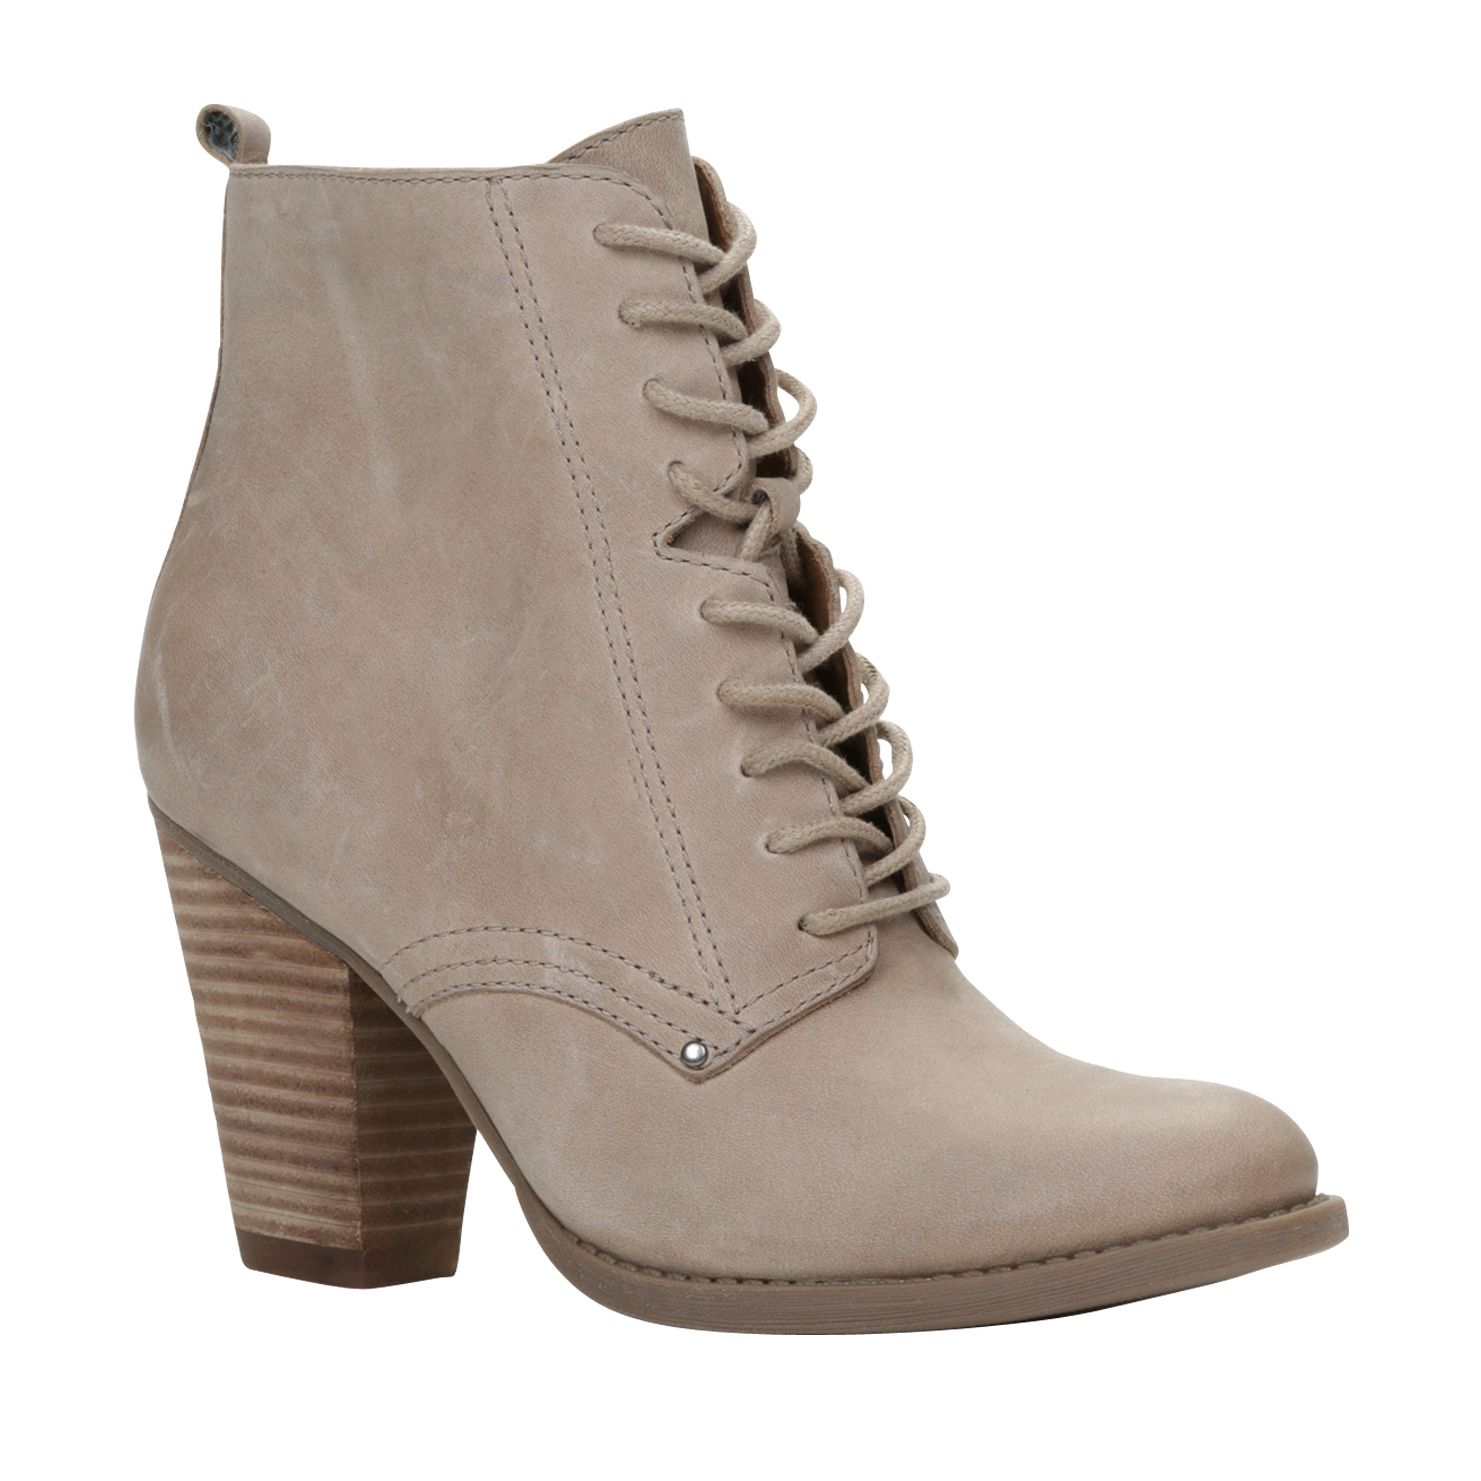 Minuk almond toe lace up block heel boots